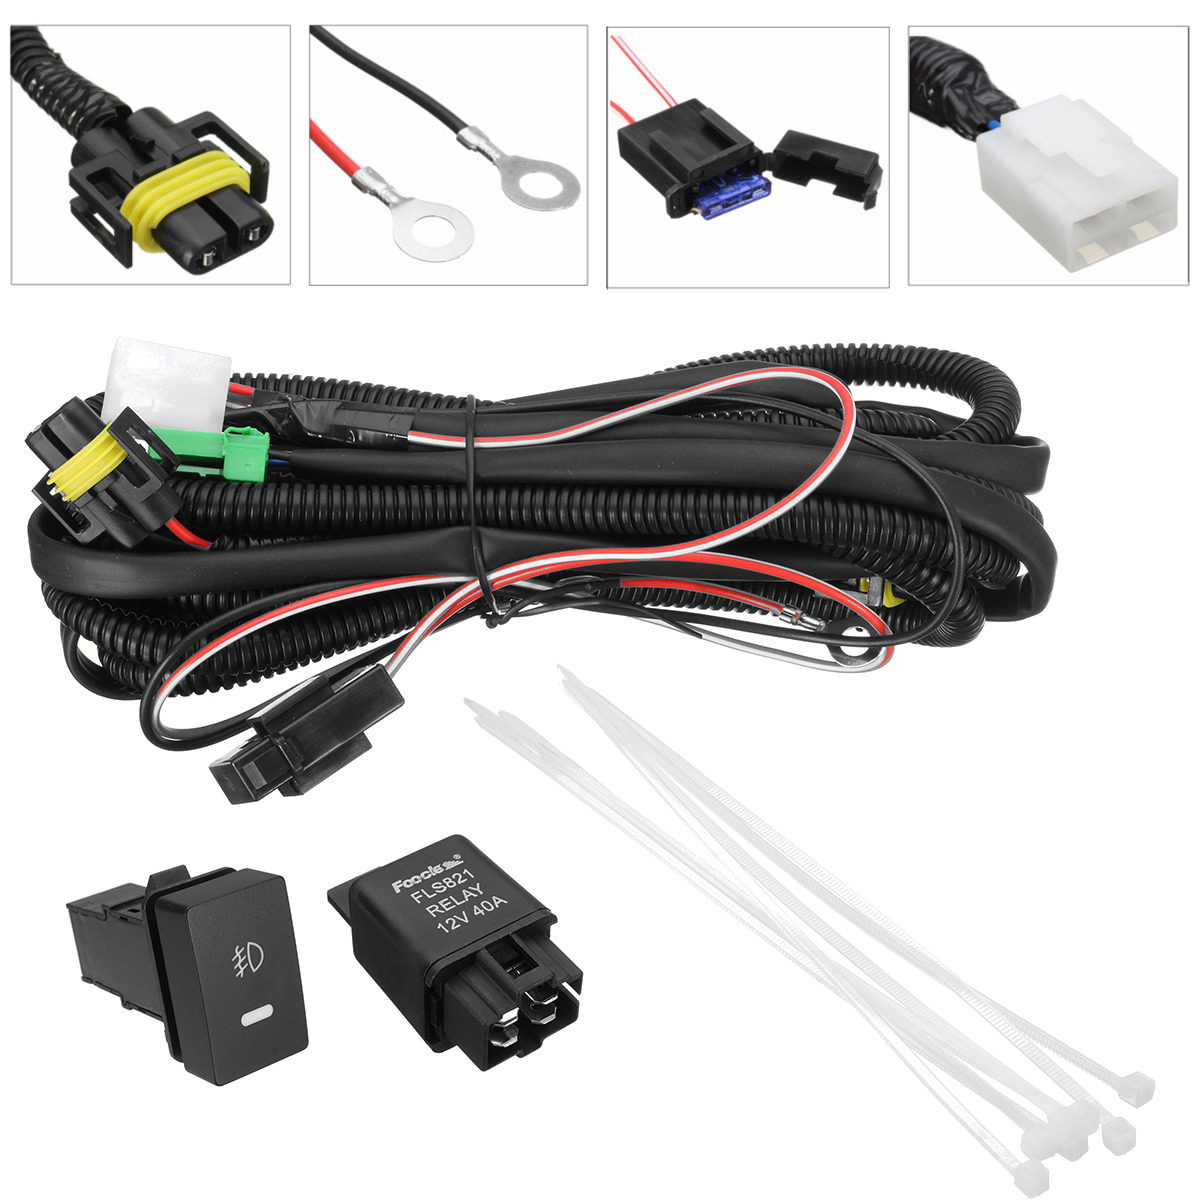 H11 Fog Light Wiring Switch Relay Harness Sockets Wire Led Indicator 1 Of 11only 0 Available